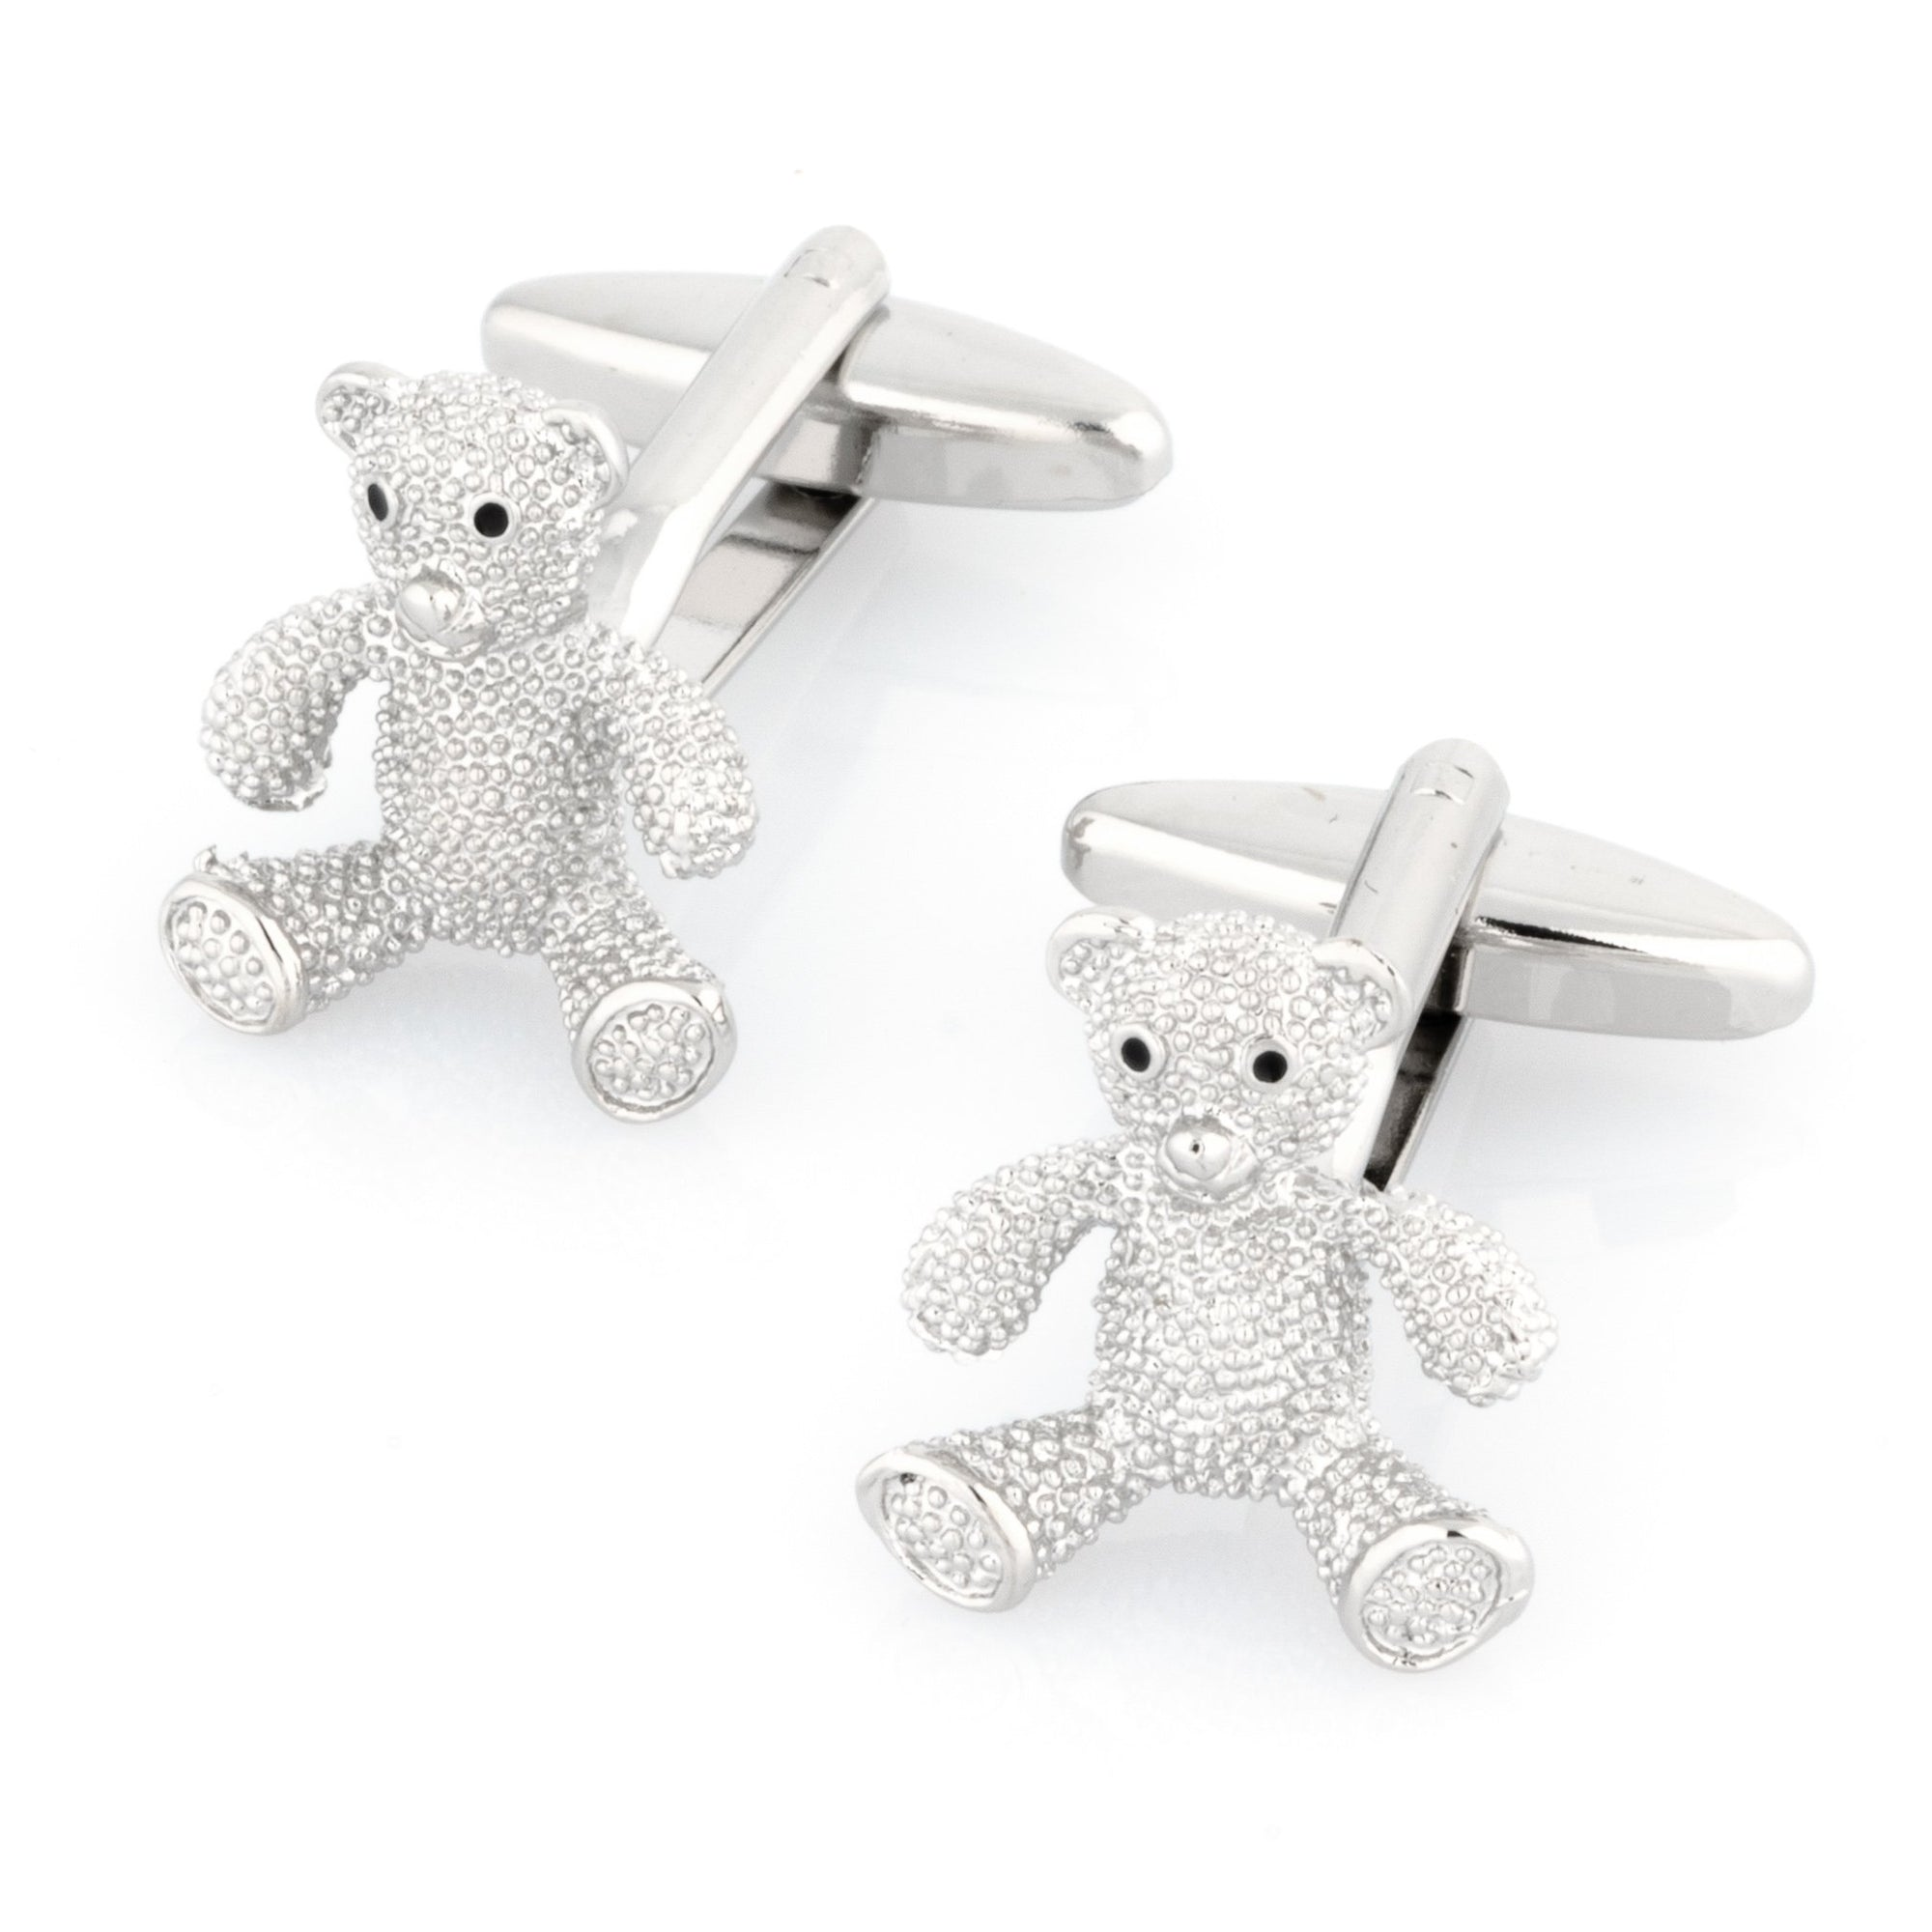 Silver Textured Teddy Bear Cufflinks